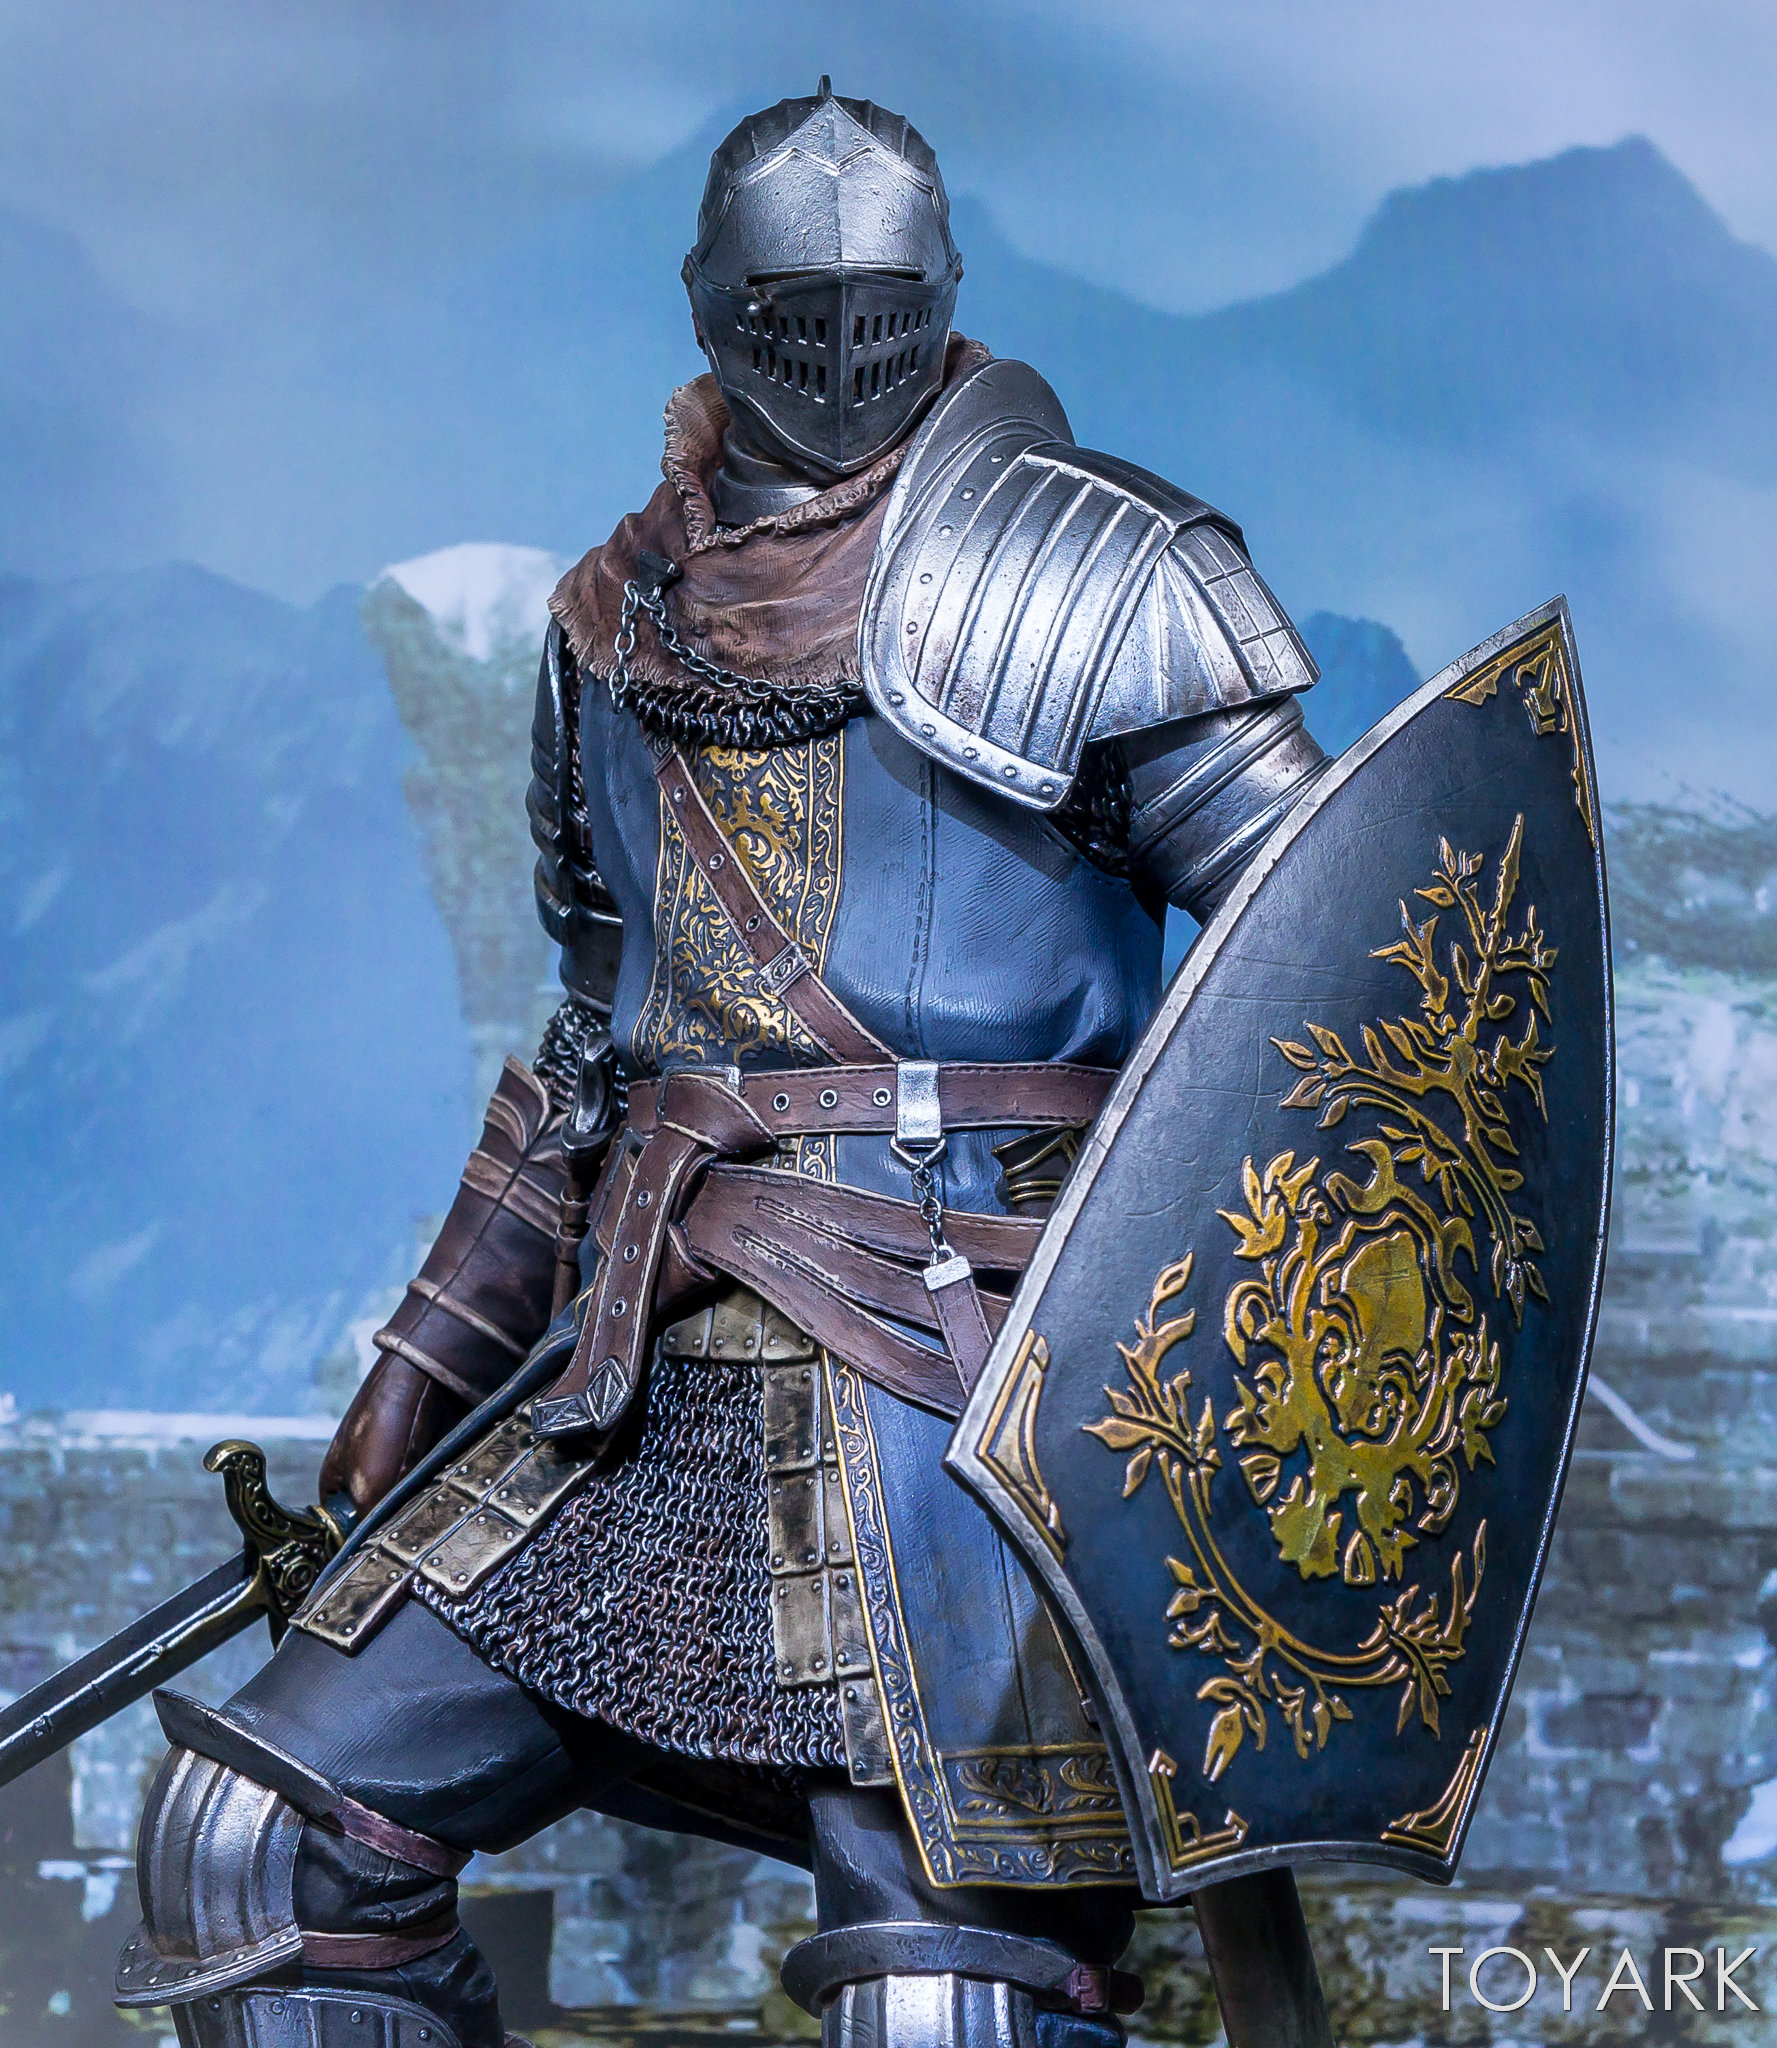 http://news.toyark.com/wp-content/uploads/sites/4/2018/02/Gecco-Dark-Souls-Knight-of-Astora-Oscar-030.jpg